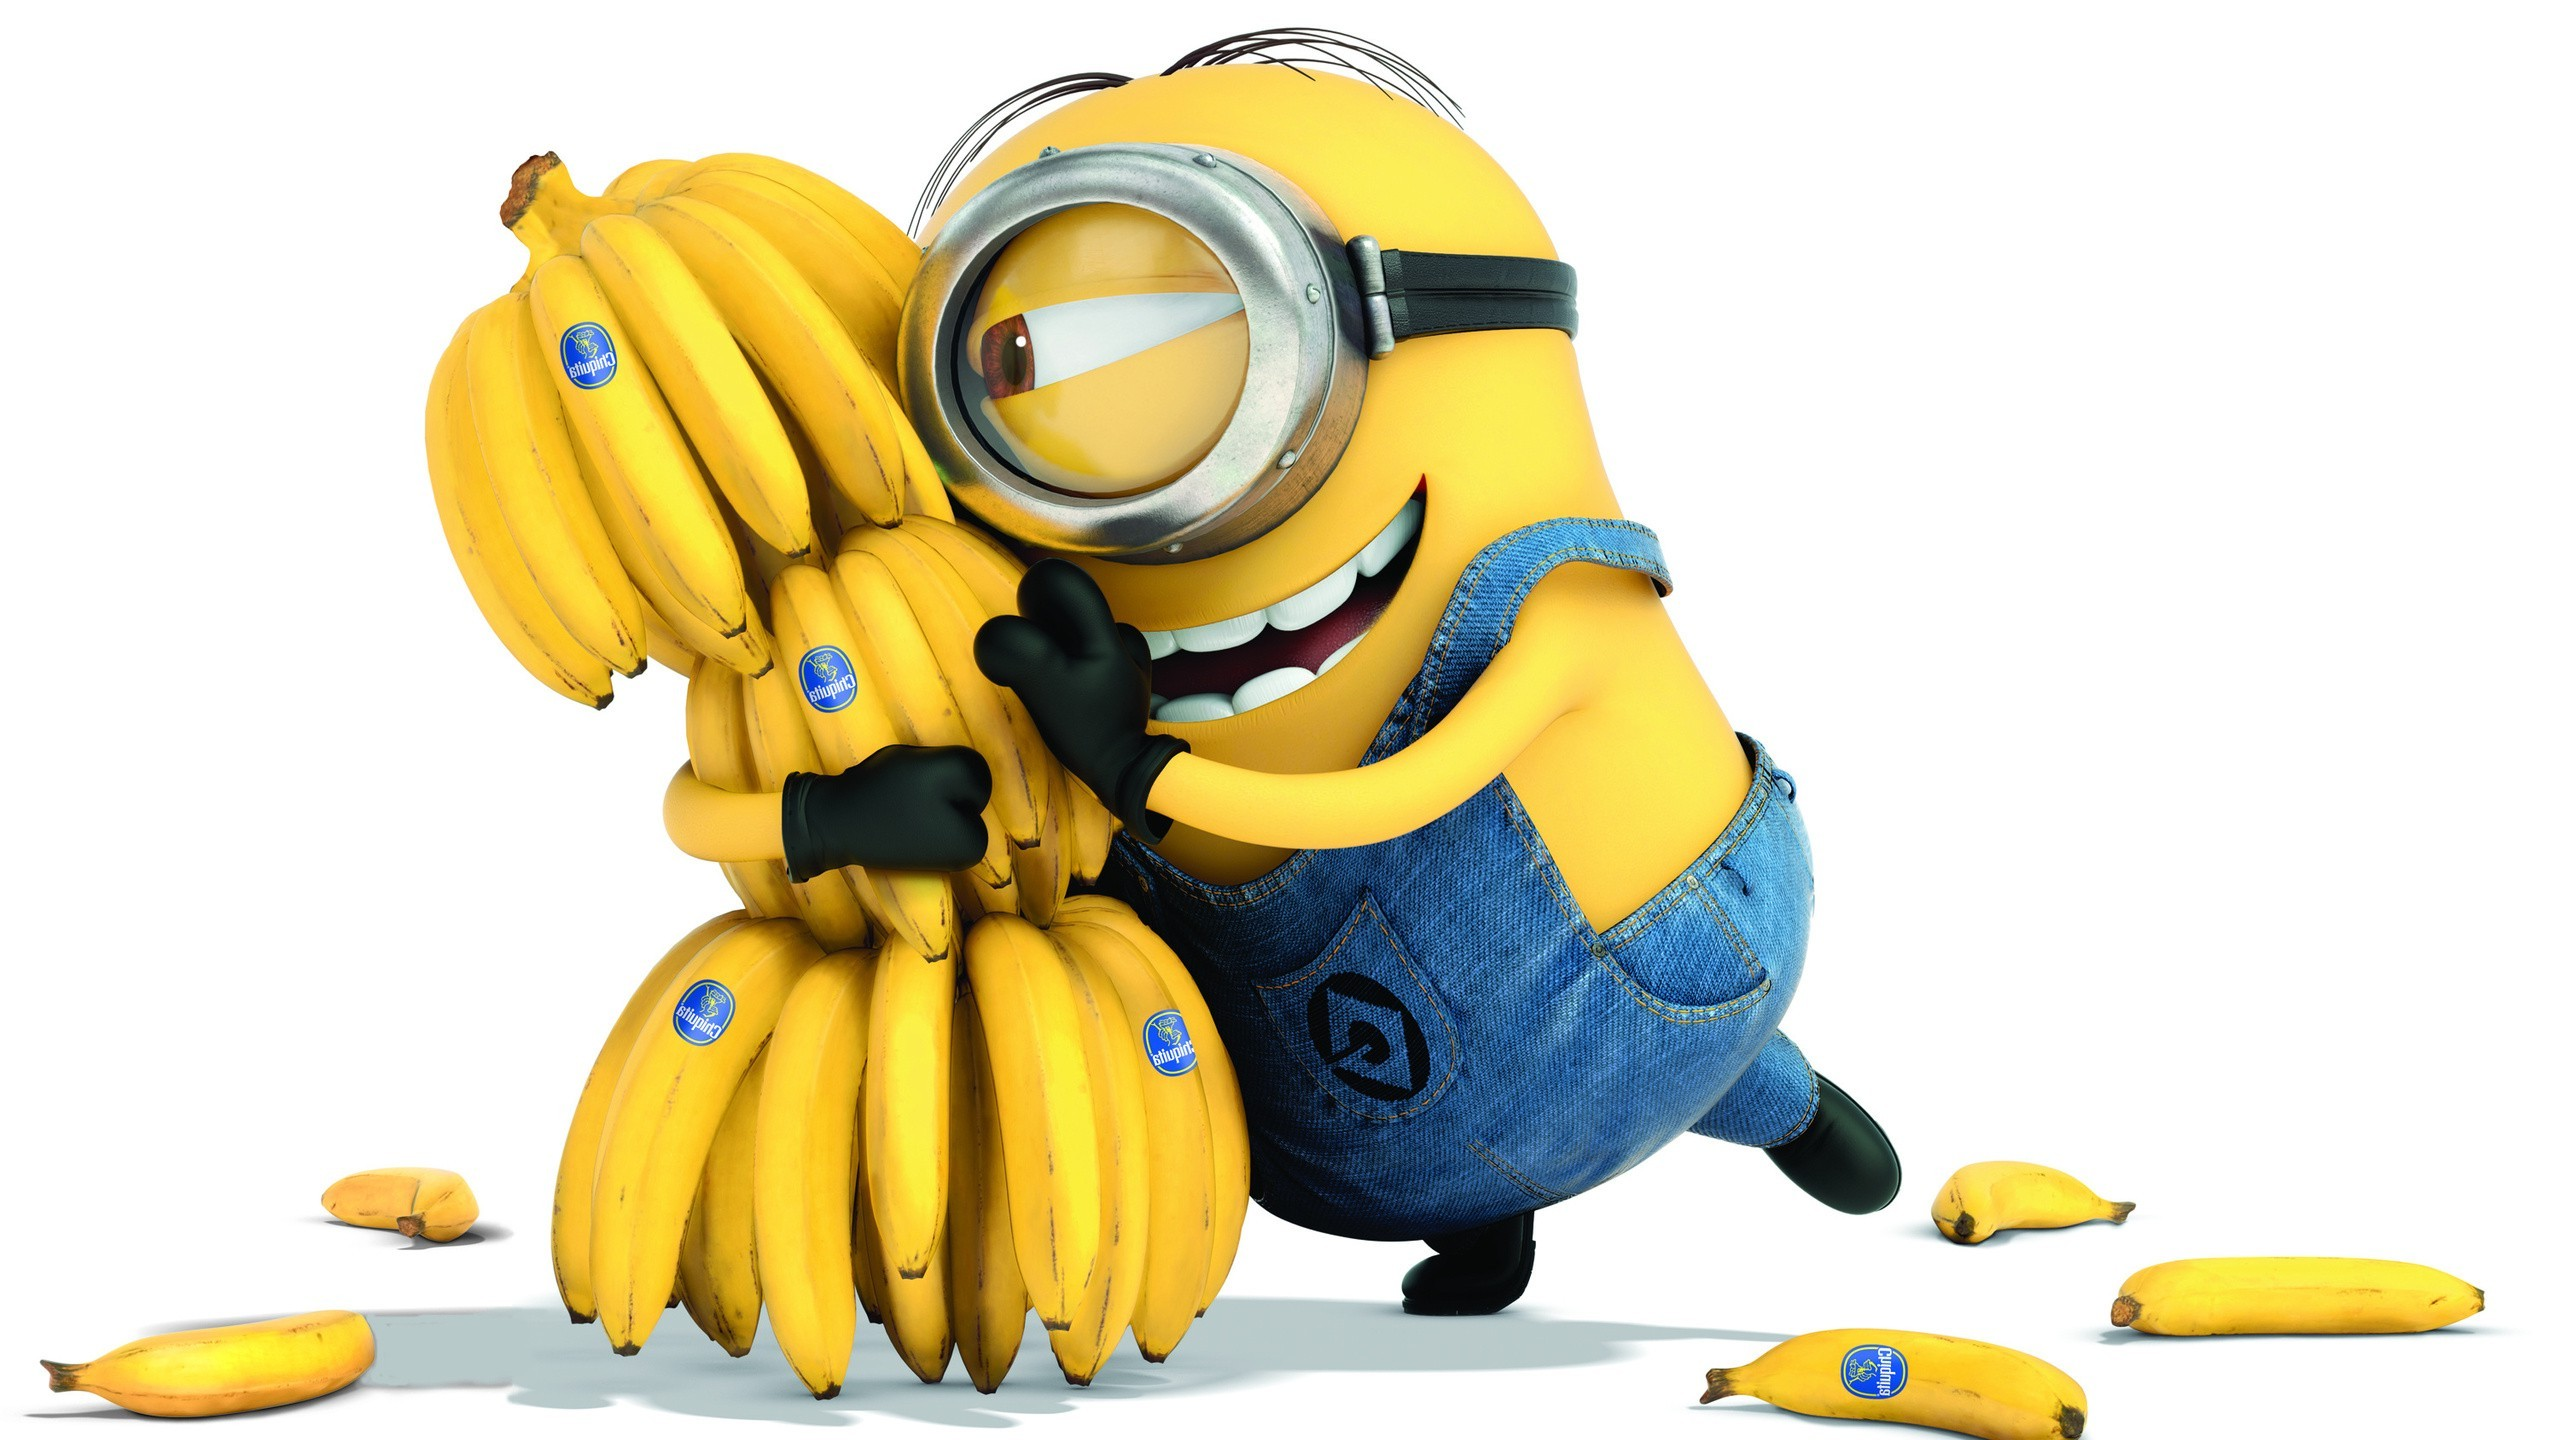 Minion Banana Coloring Pages To Print